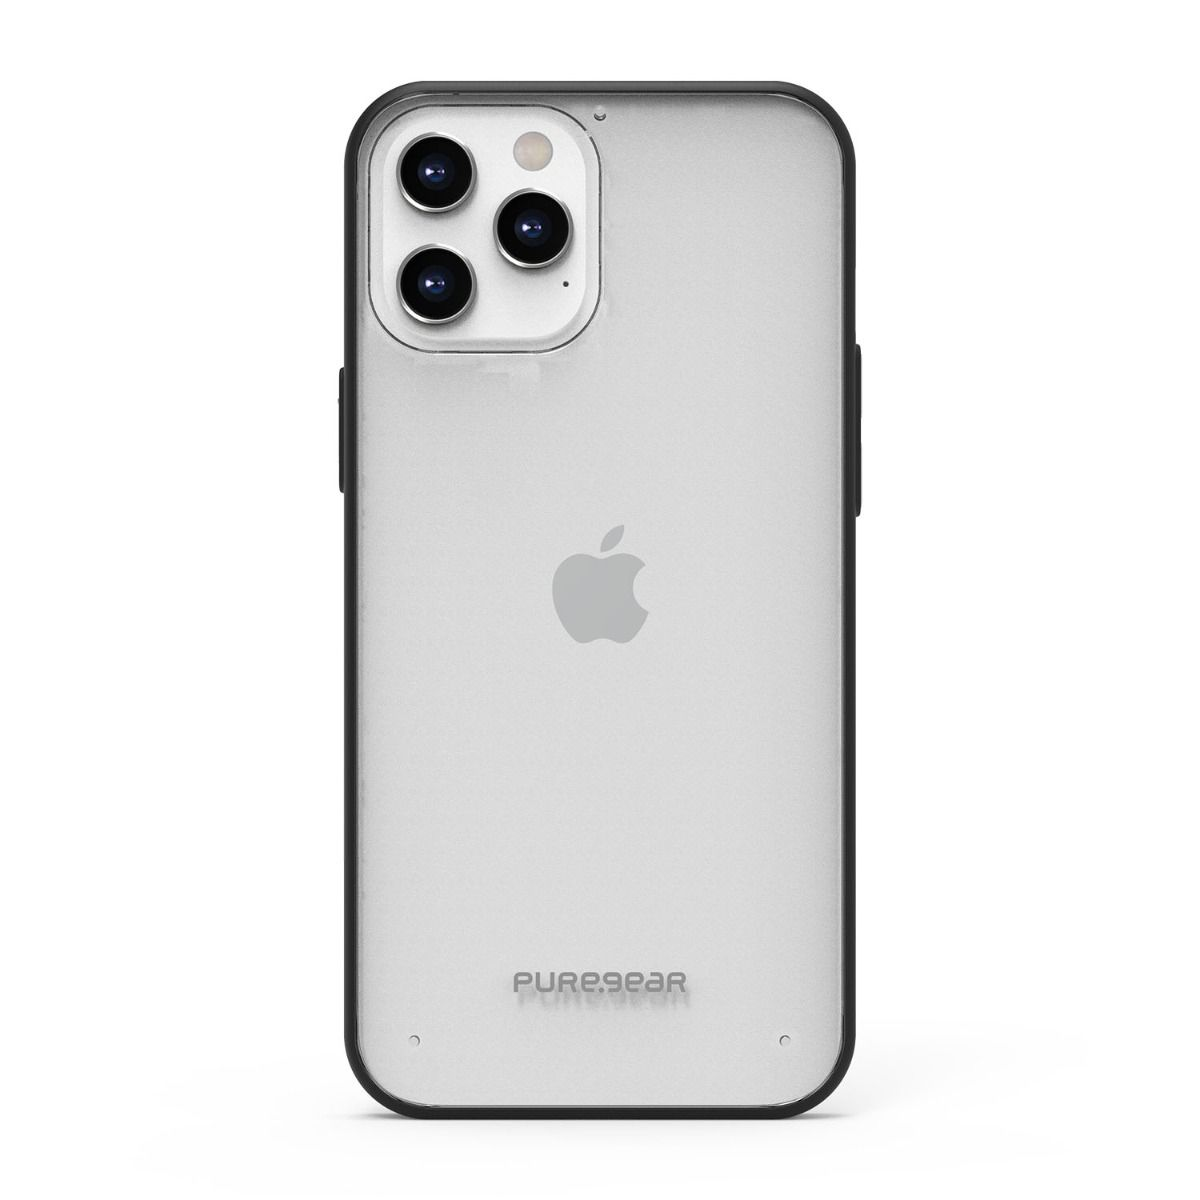 Apple iPhone 12 Pro Max Slim Shell Case - Clear/Black